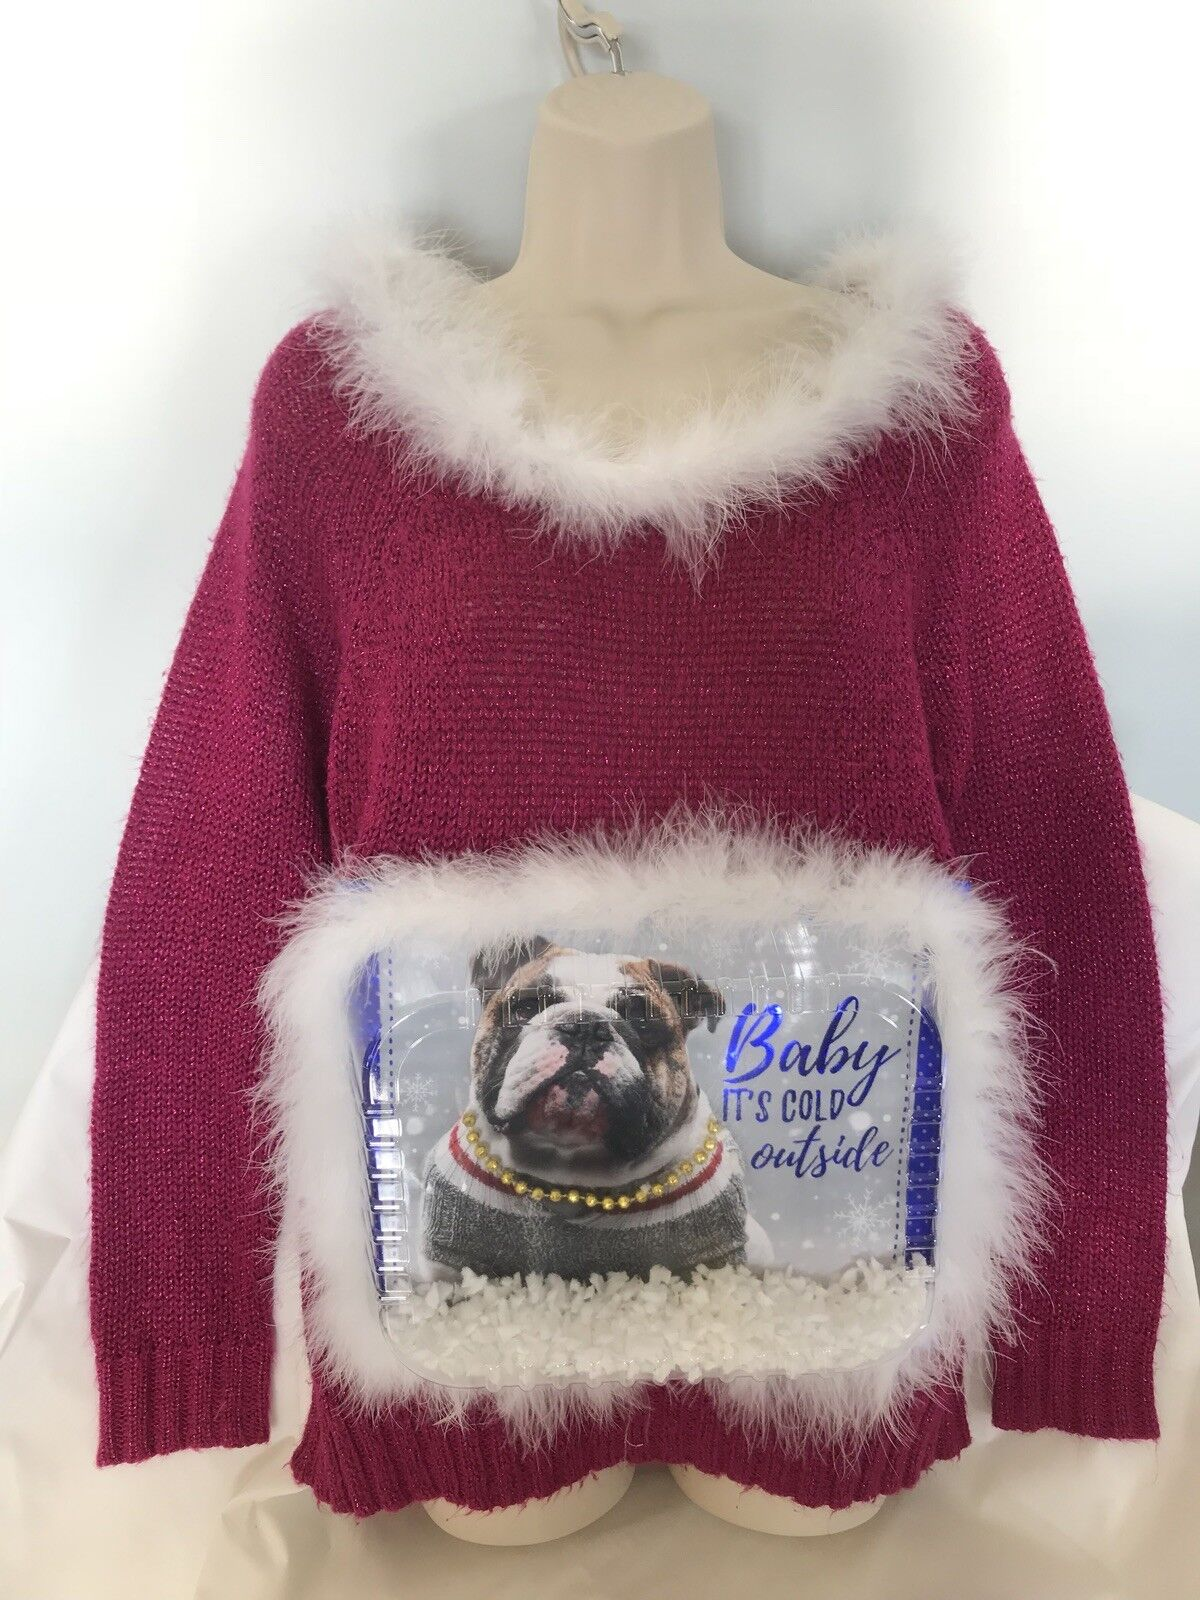 Ugly Christmas Sweater Baby it's cold outside Bulldog Handmade Pink Sweater SZ L